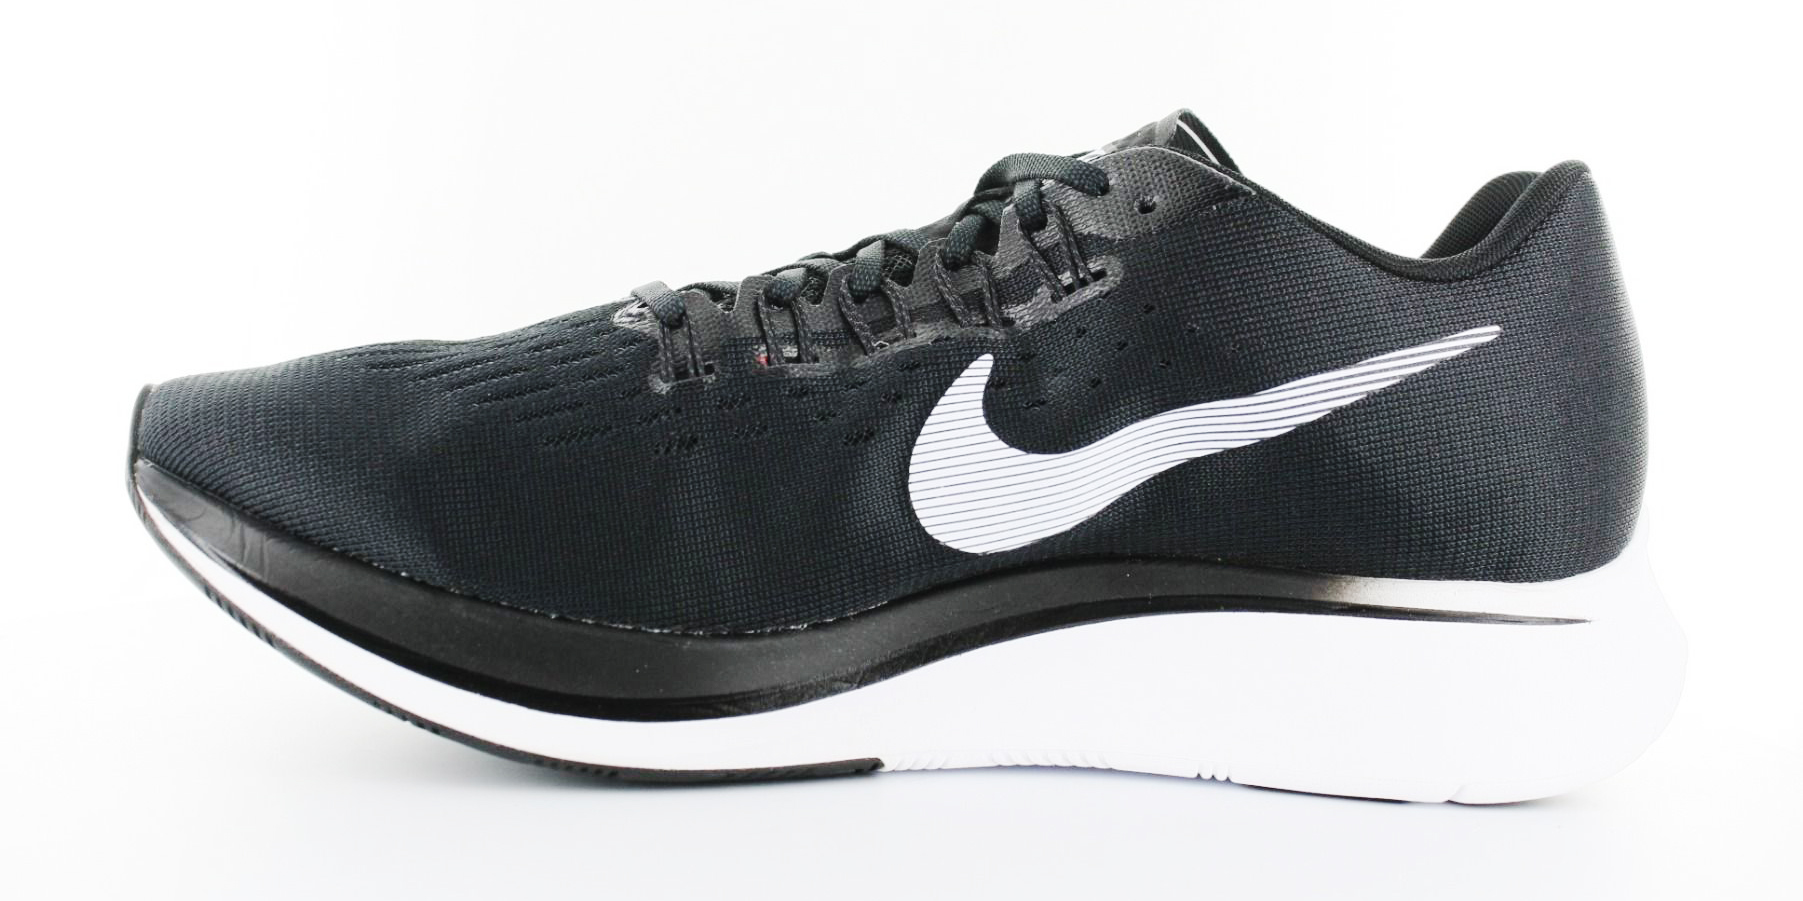 Nike Zoom Fly Review: Fit, Feel